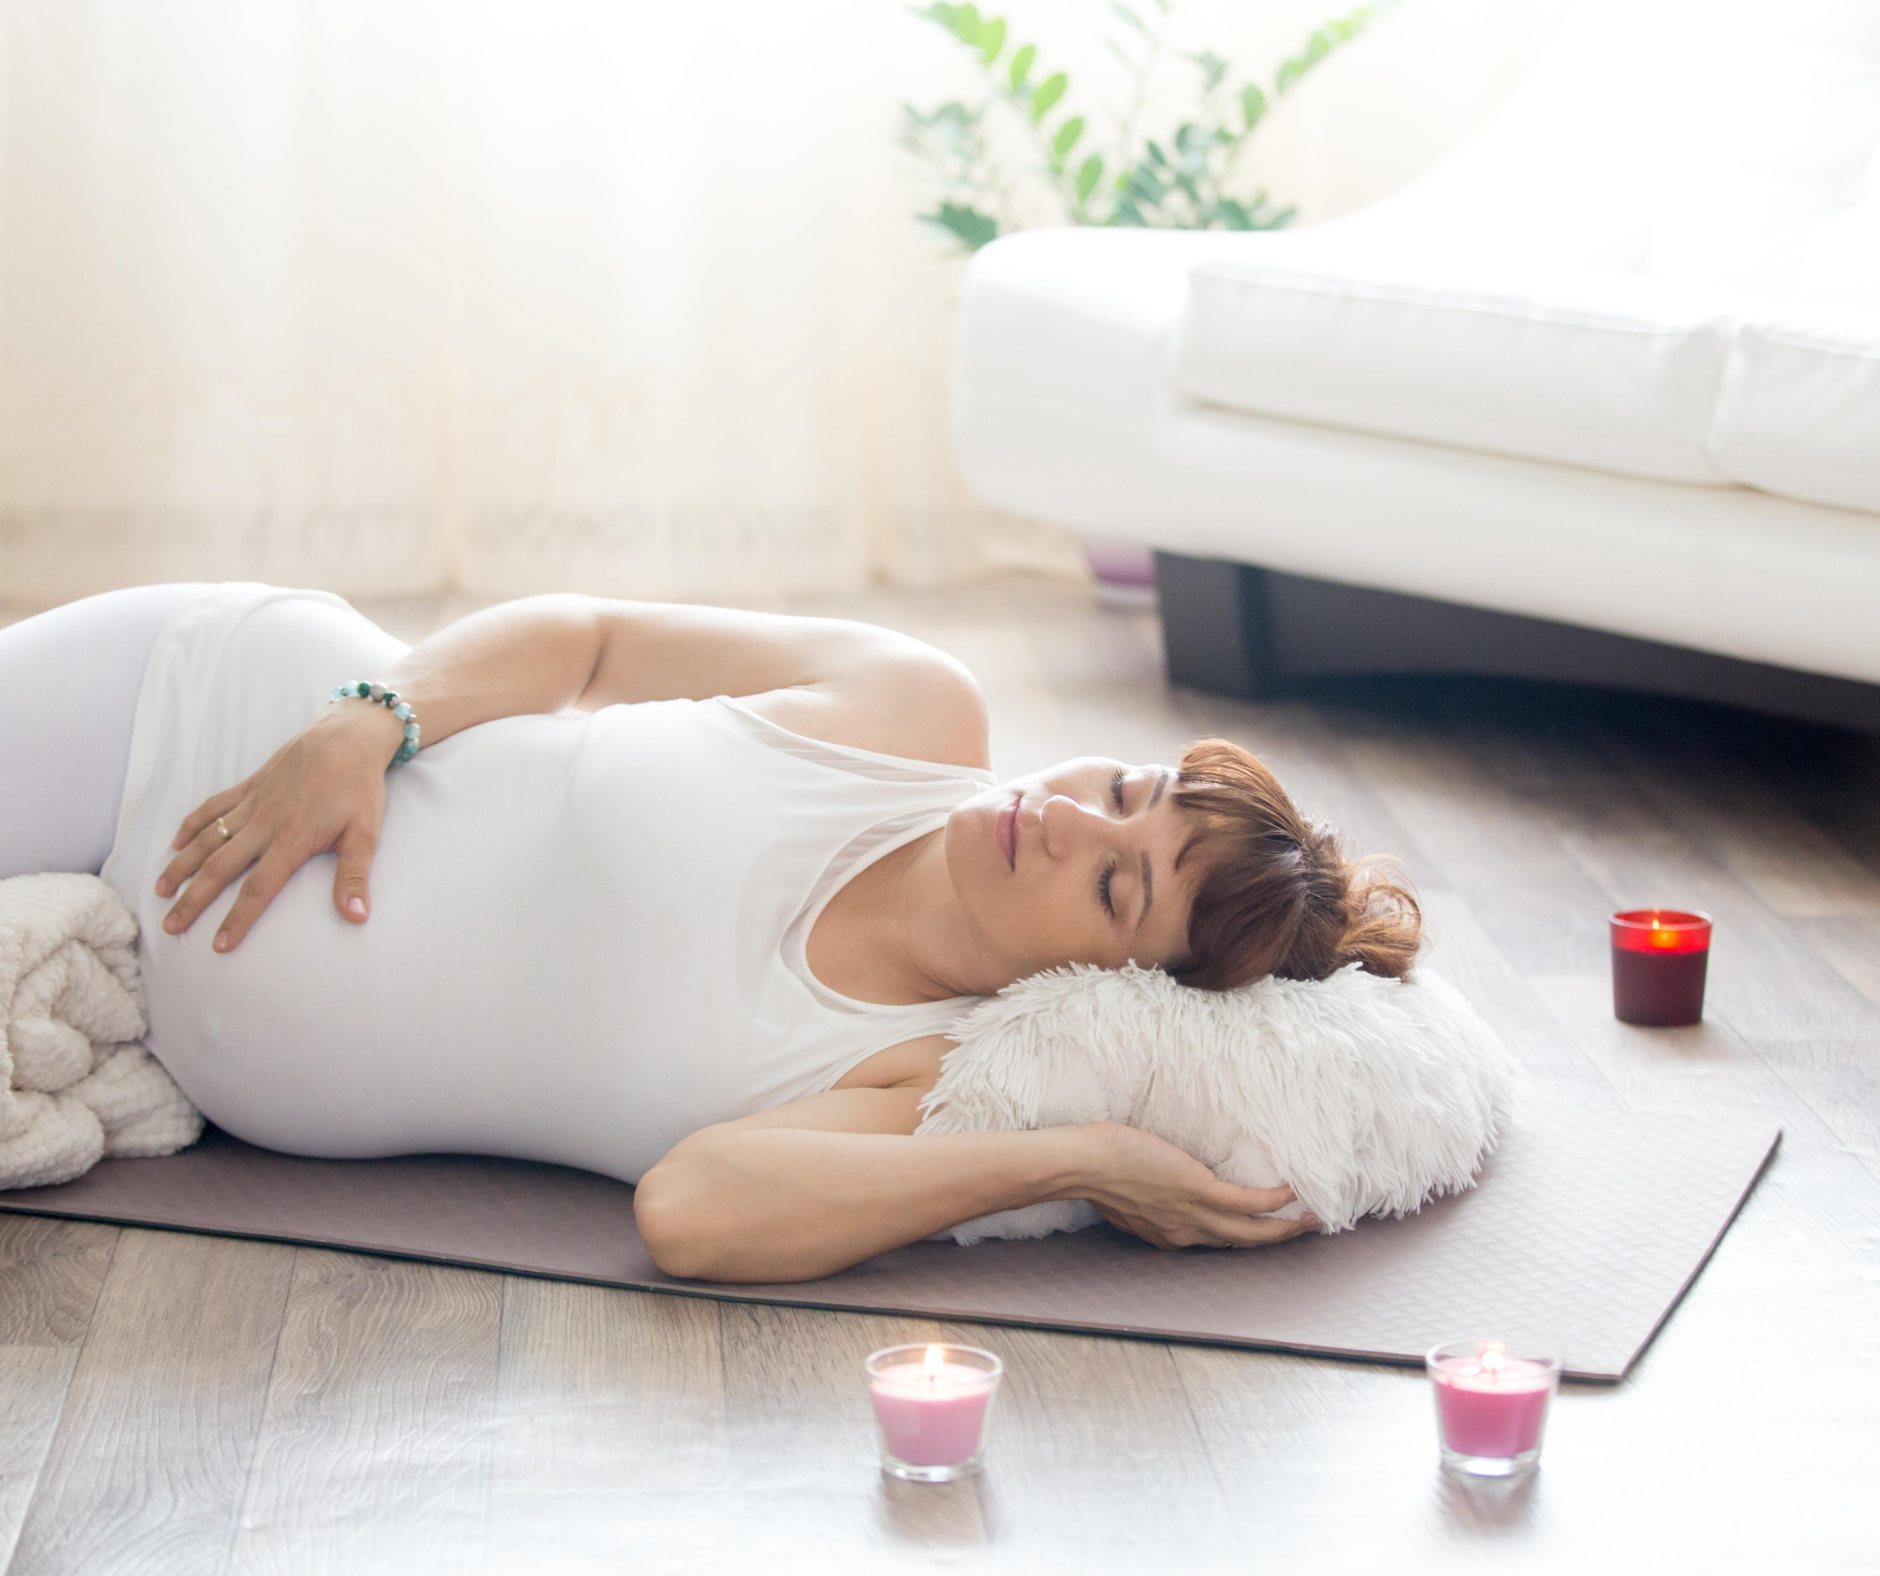 pregnant lady lying down on her side relaxing with candles